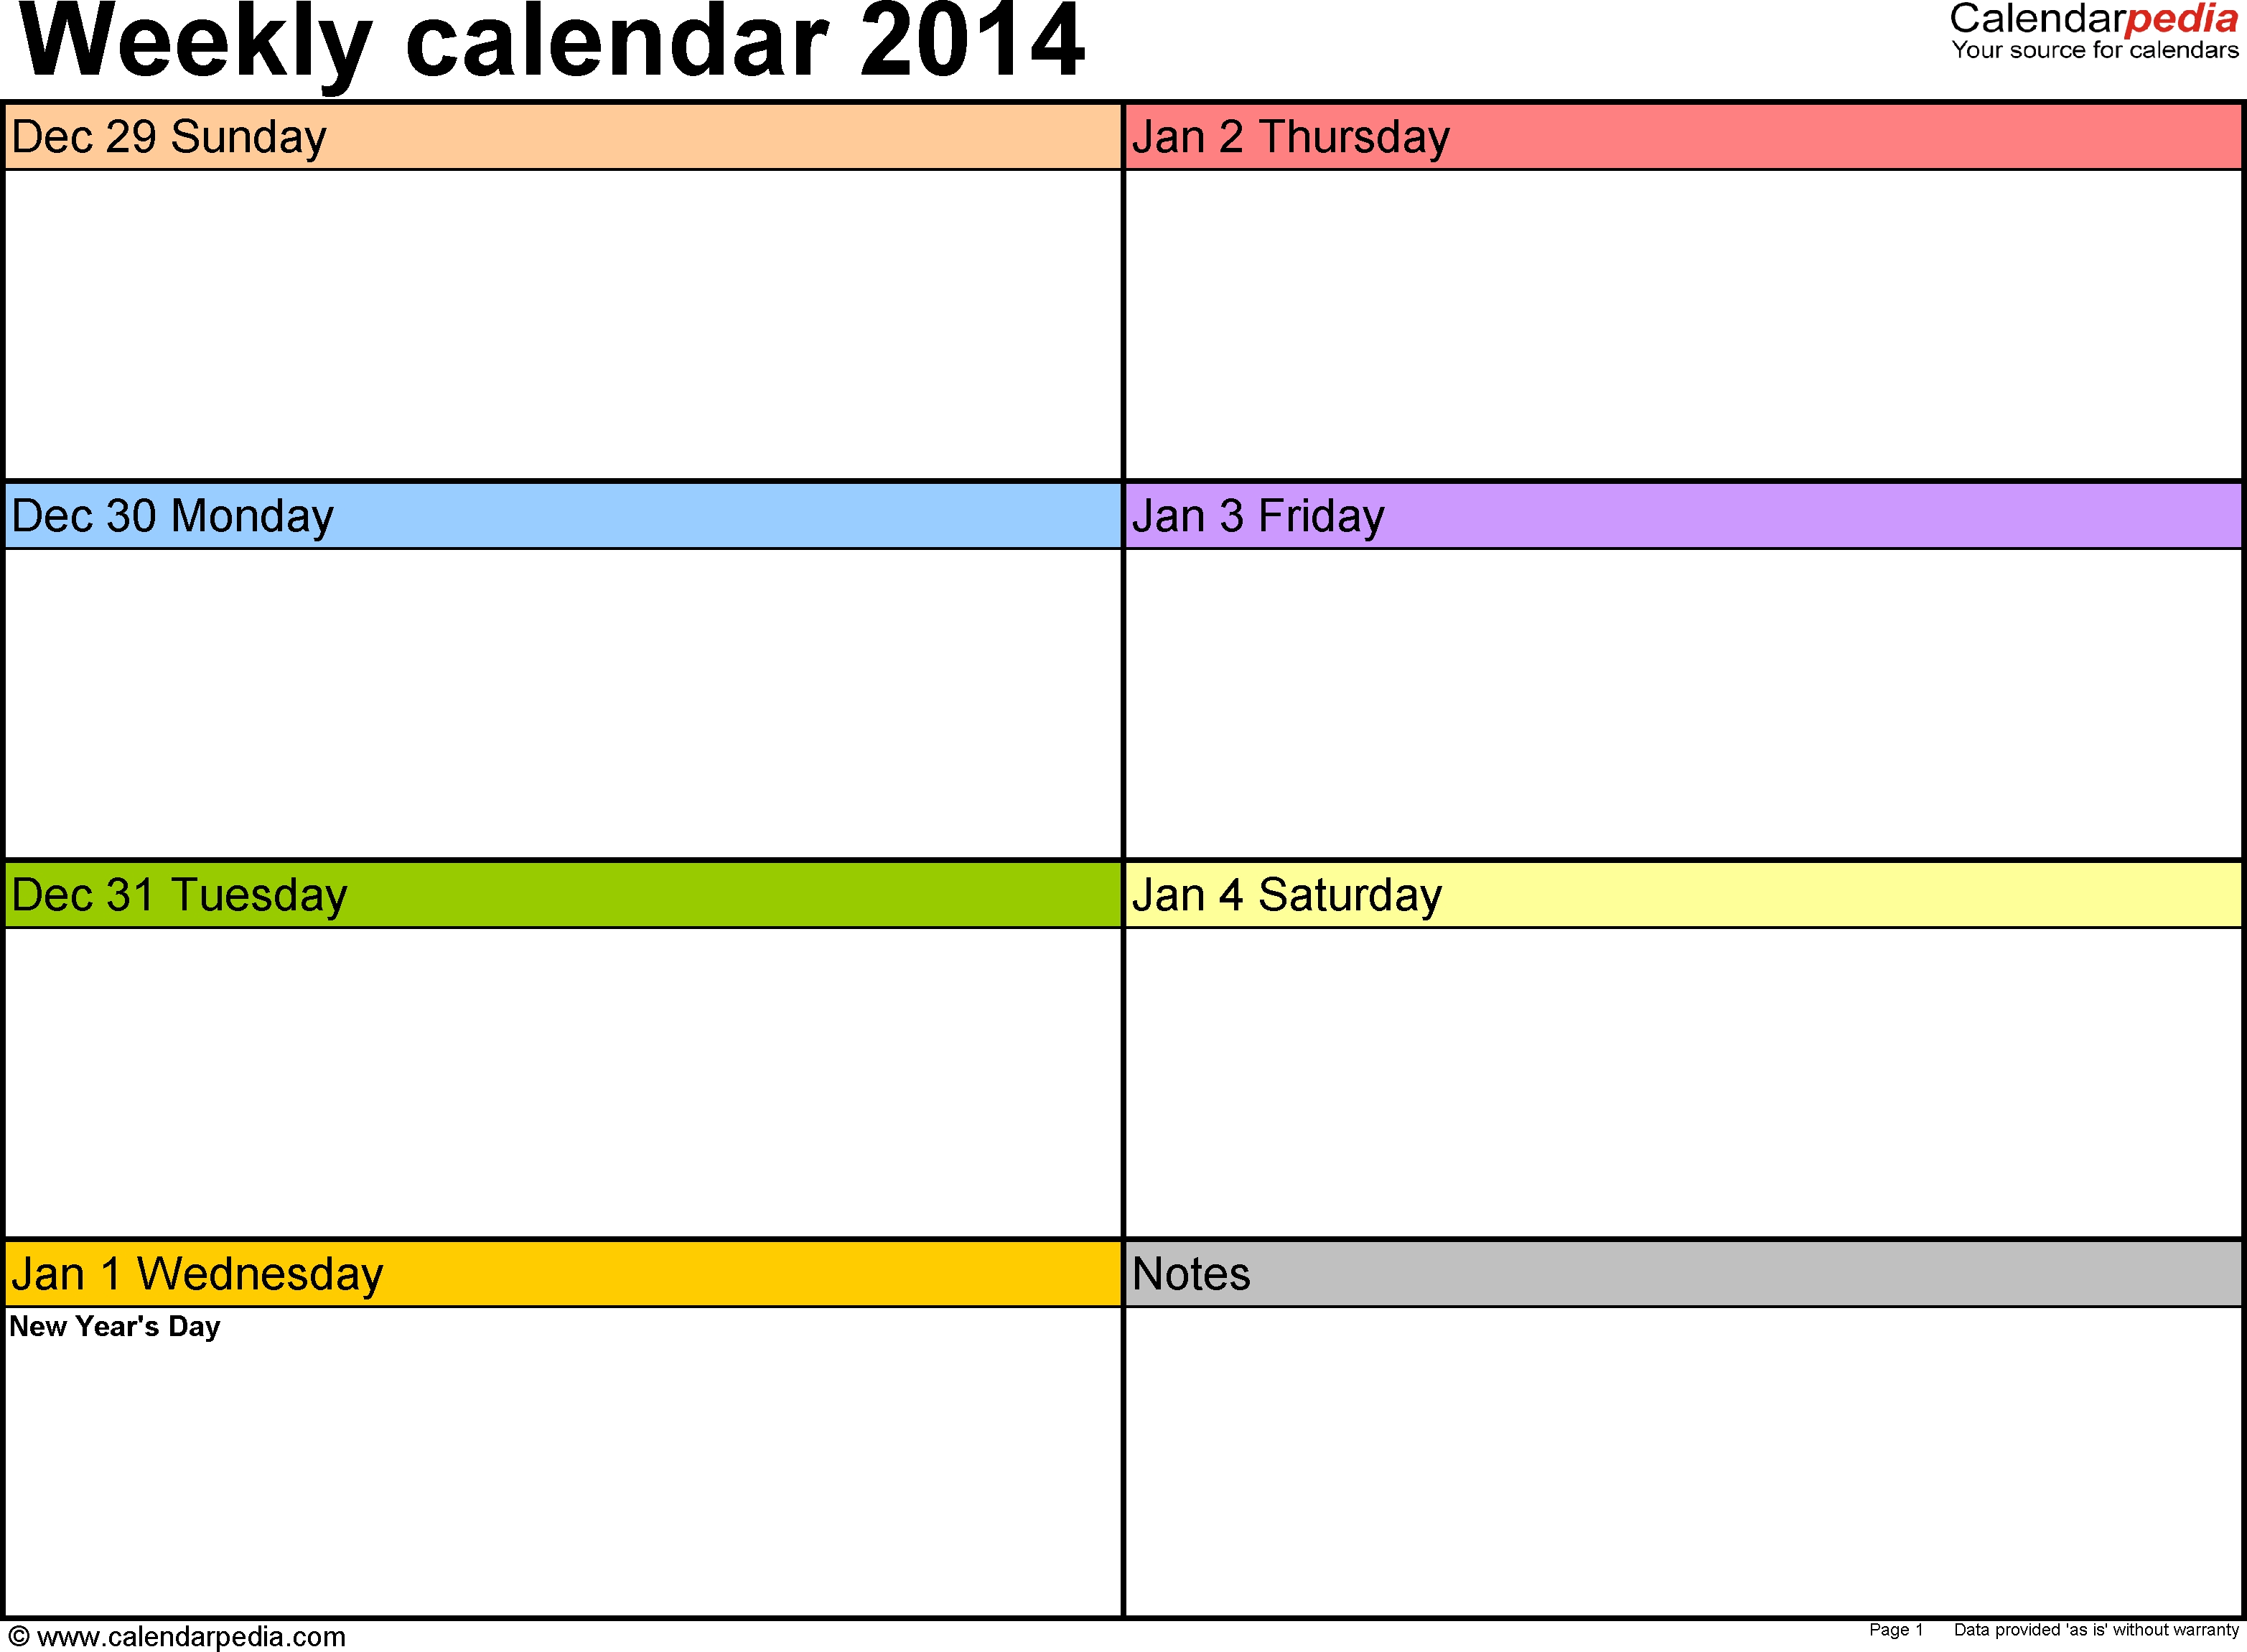 Weekly Calendars 2014 For Excel - 4 Free Printable Templates